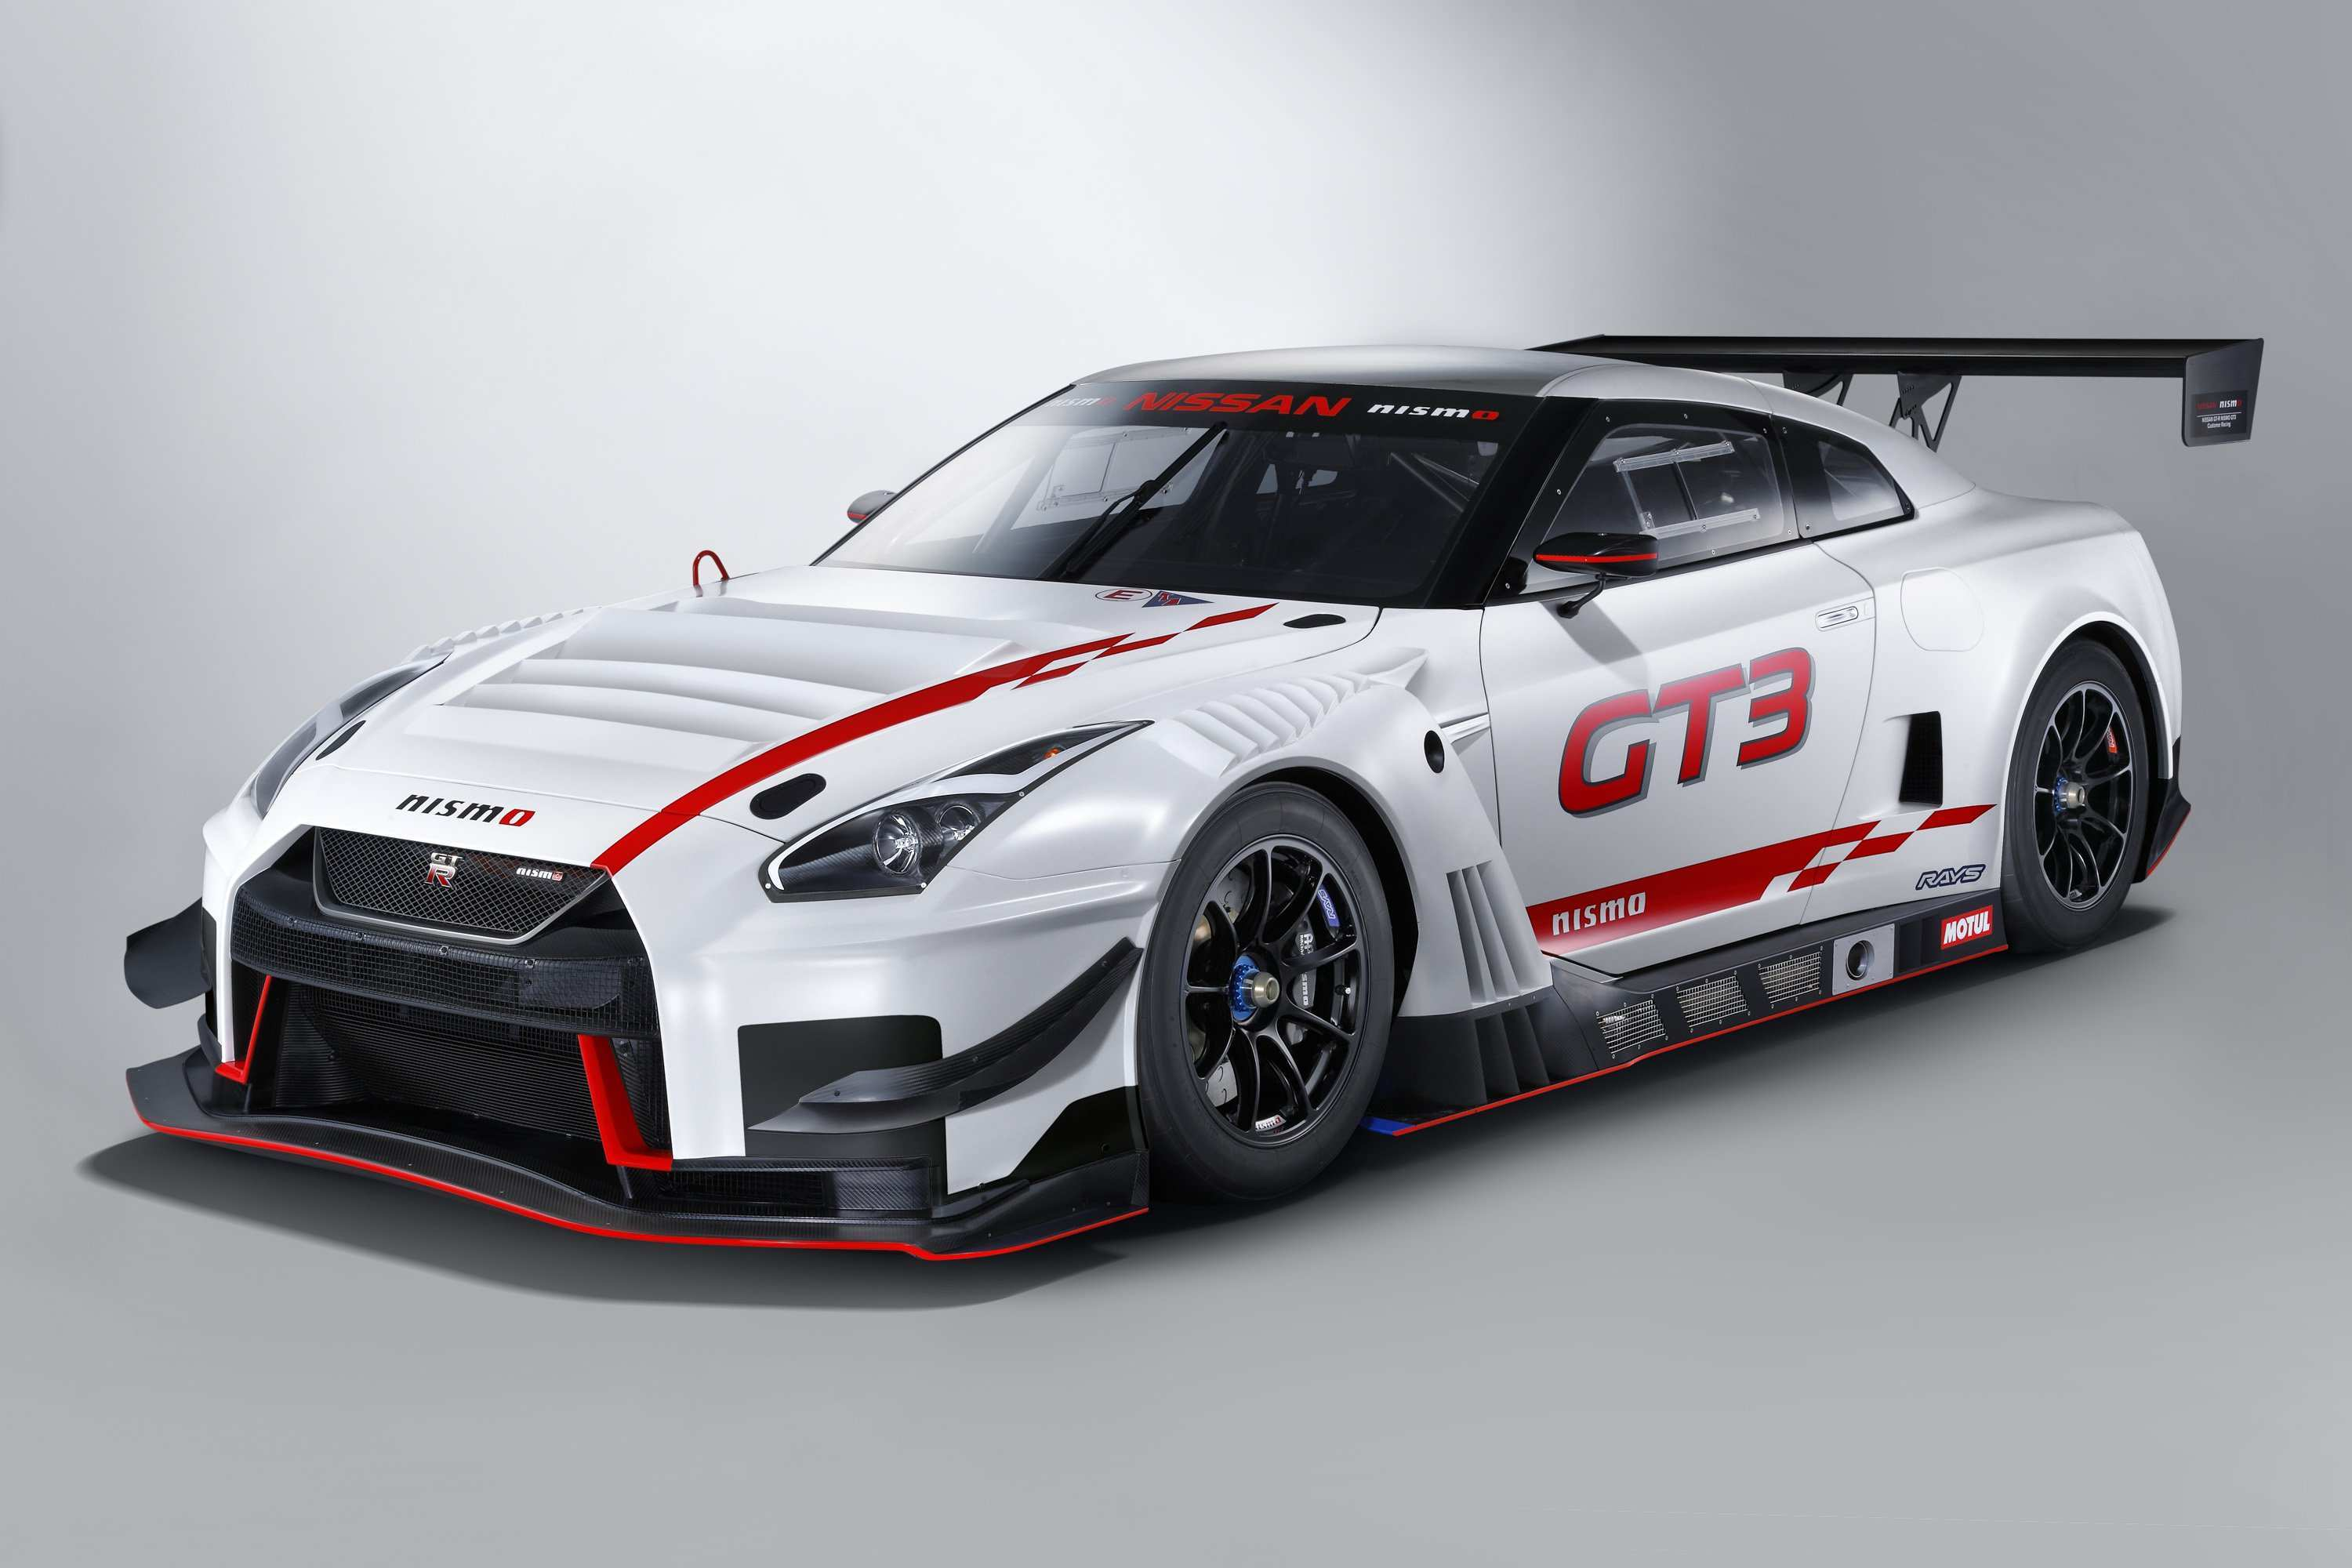 72 Concept of Nissan 2019 Gtr Performance and New Engine for Nissan 2019 Gtr